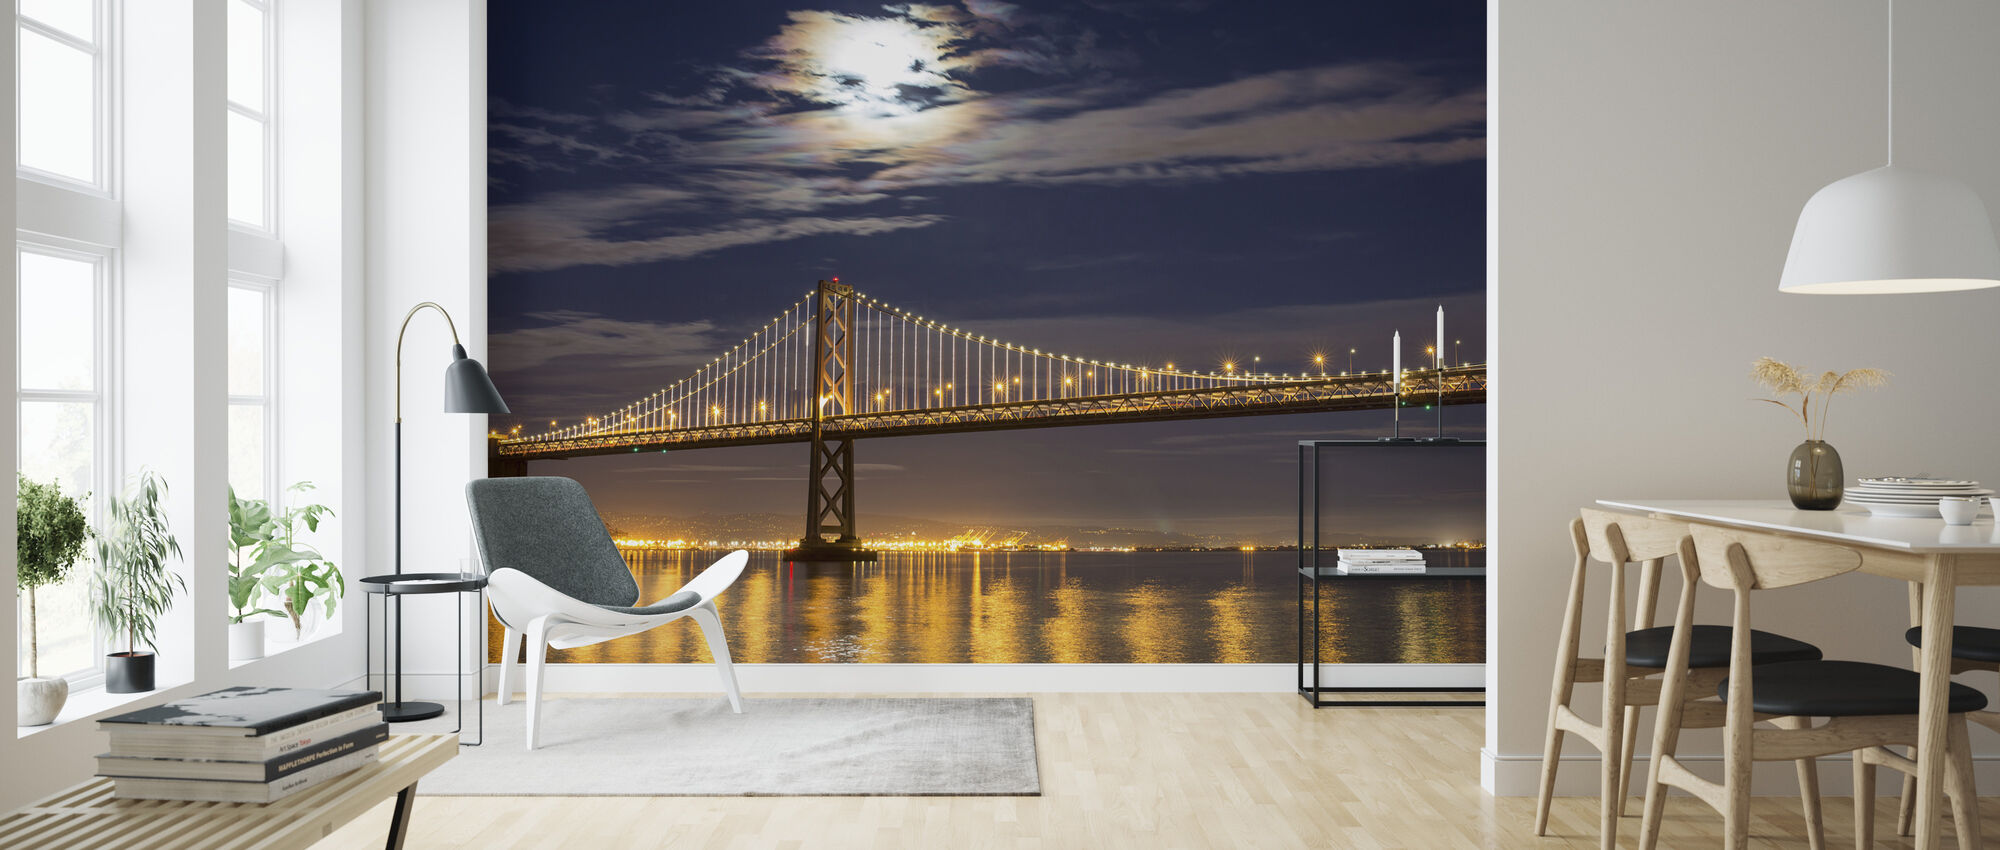 Moonrise over Bay Bridge - Wallpaper - Living Room